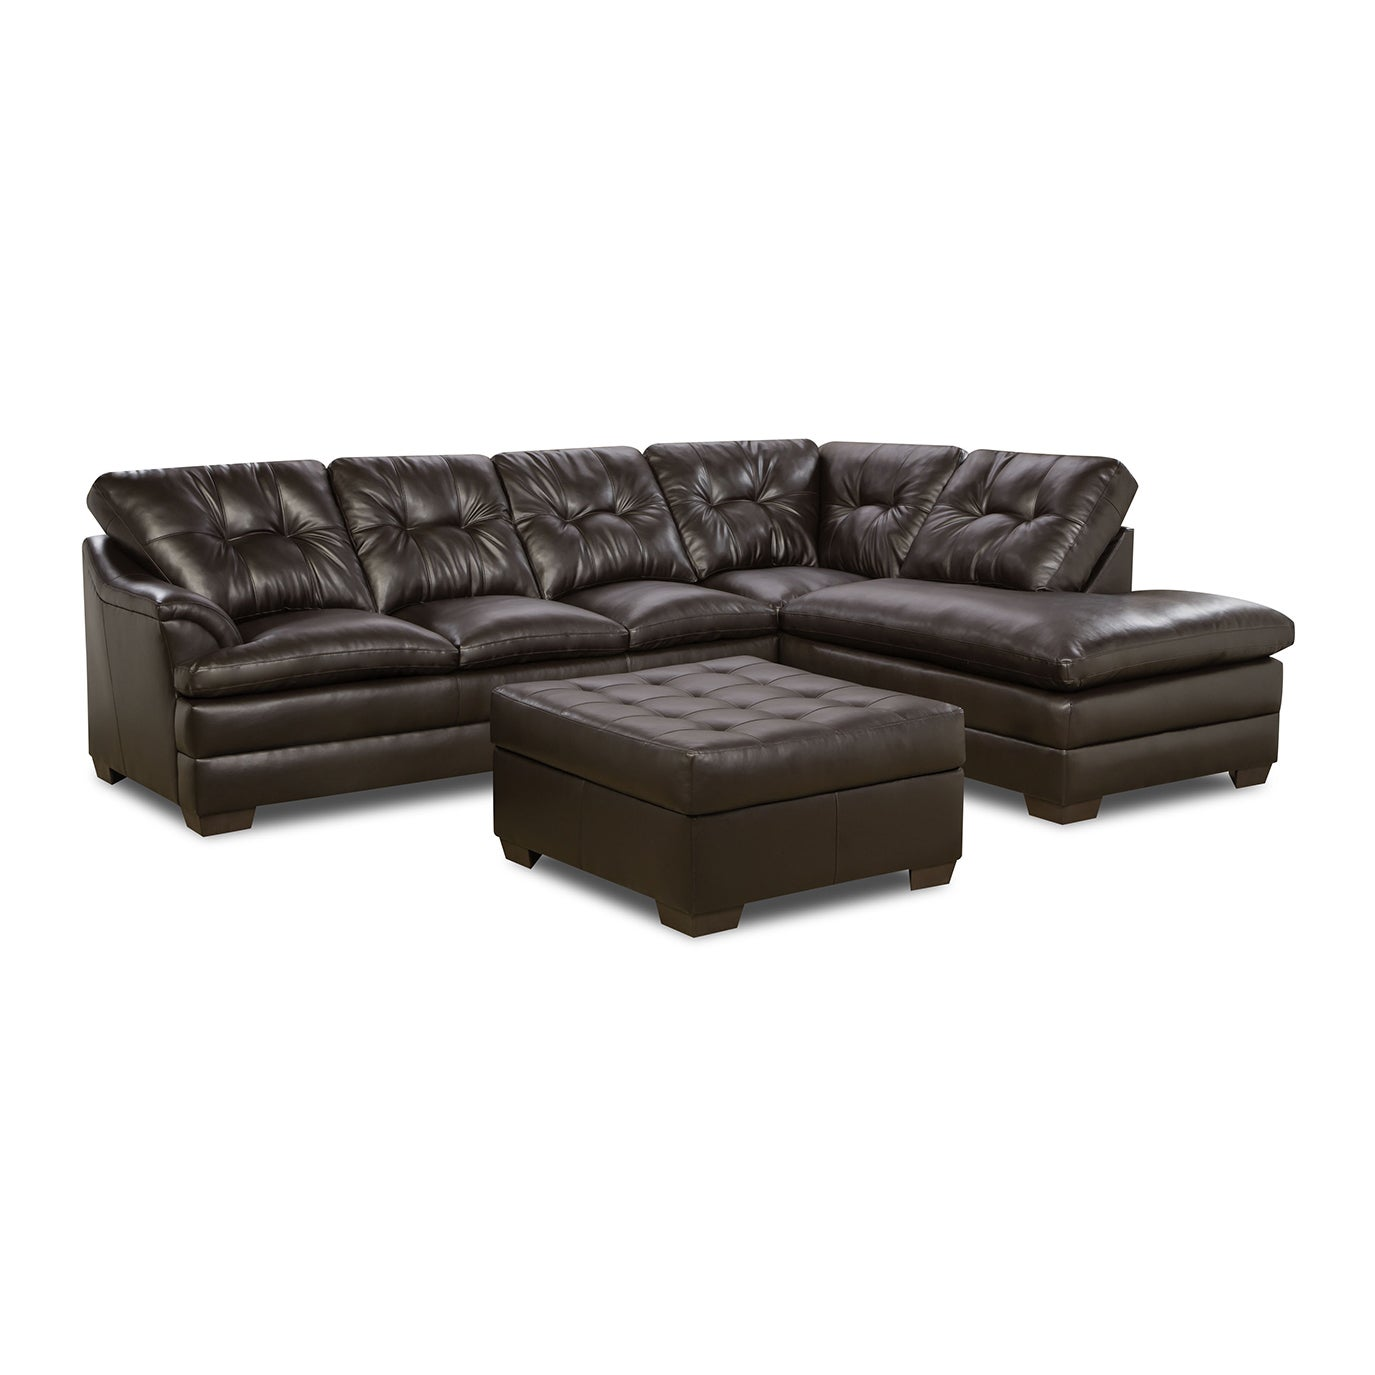 Simmons Upholstery Apollo Espresso Sectional and Ottoman - Free ...